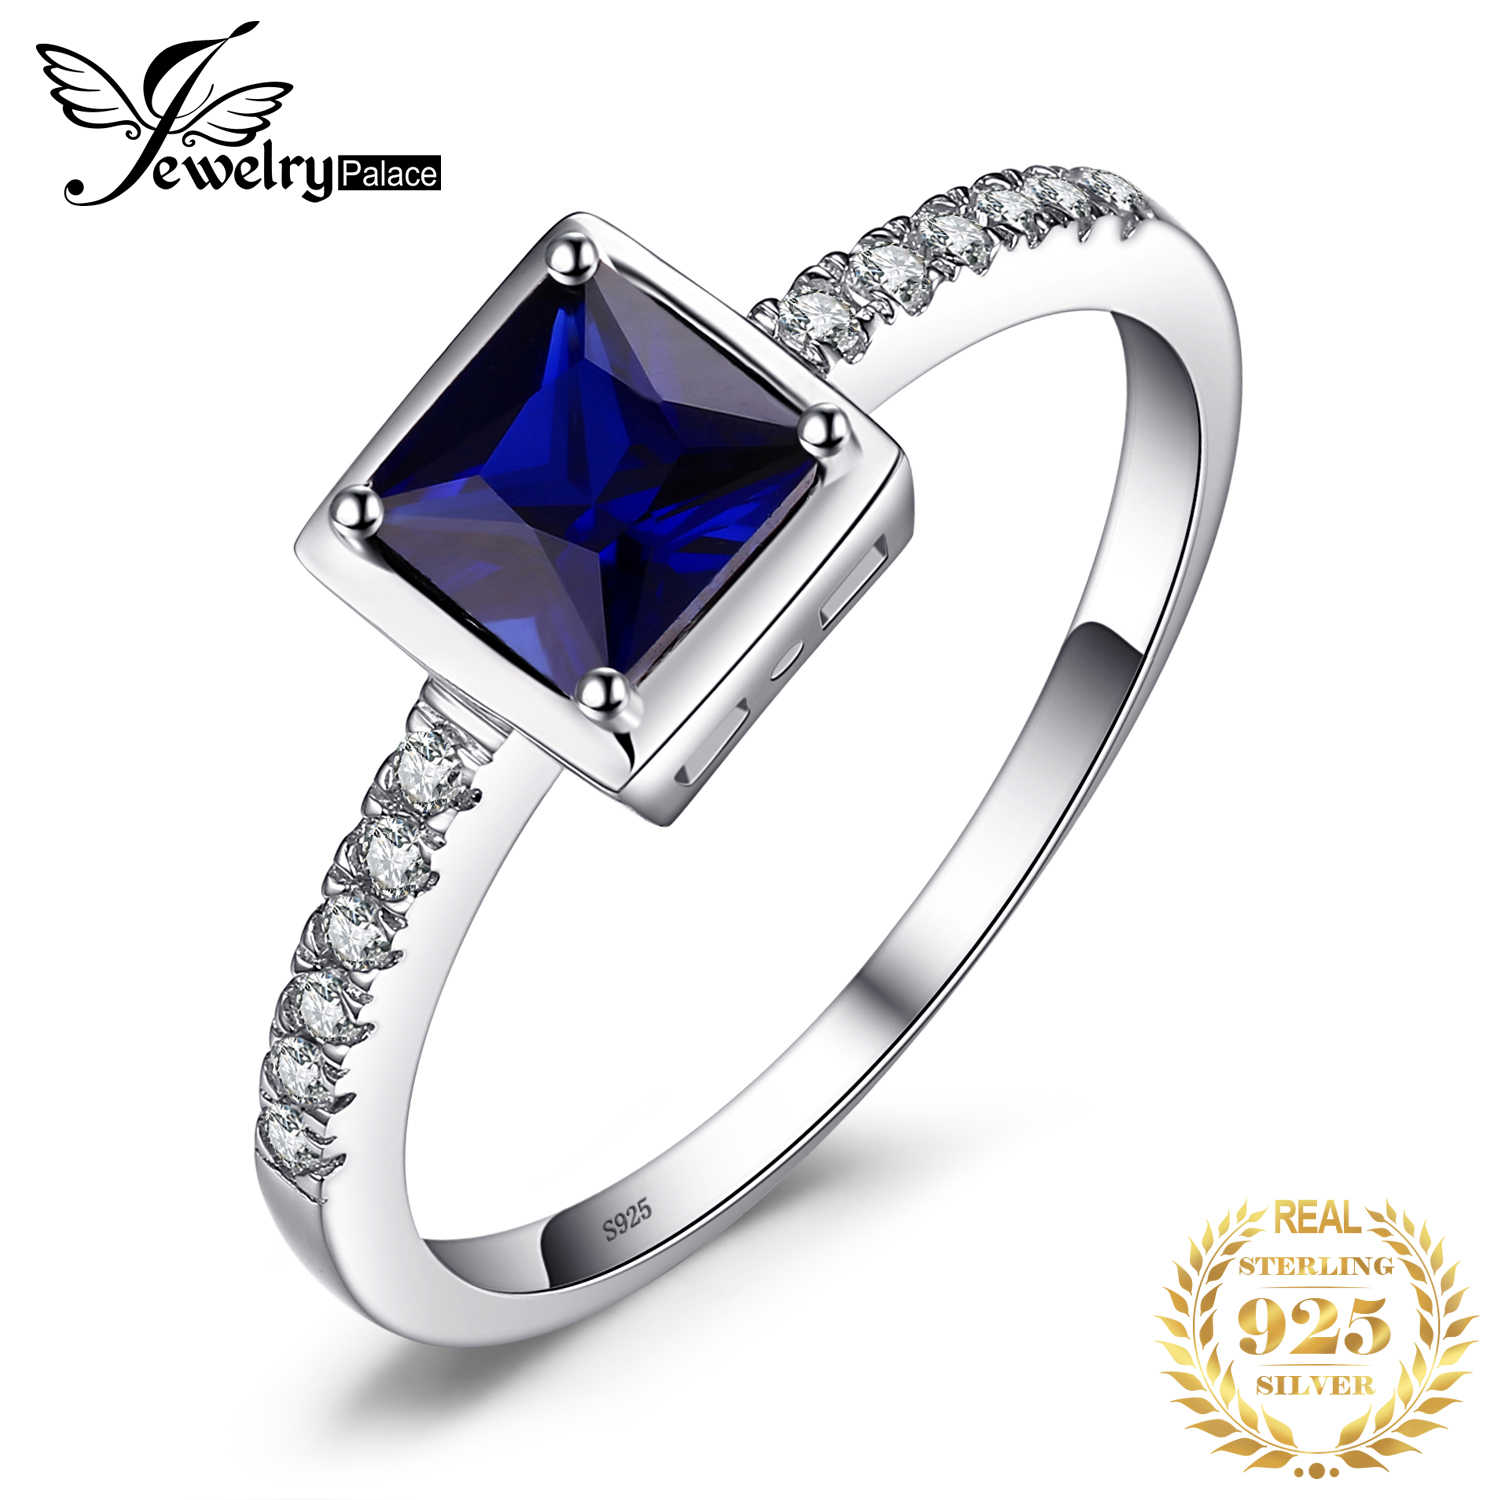 JewelryPalace Square 0.9ct สร้าง Blue Sapphire Solitaire แหวนเงินแท้ 925 เครื่องประดับสำหรับผู้หญิงแฟชั่นเครื่องประดับ